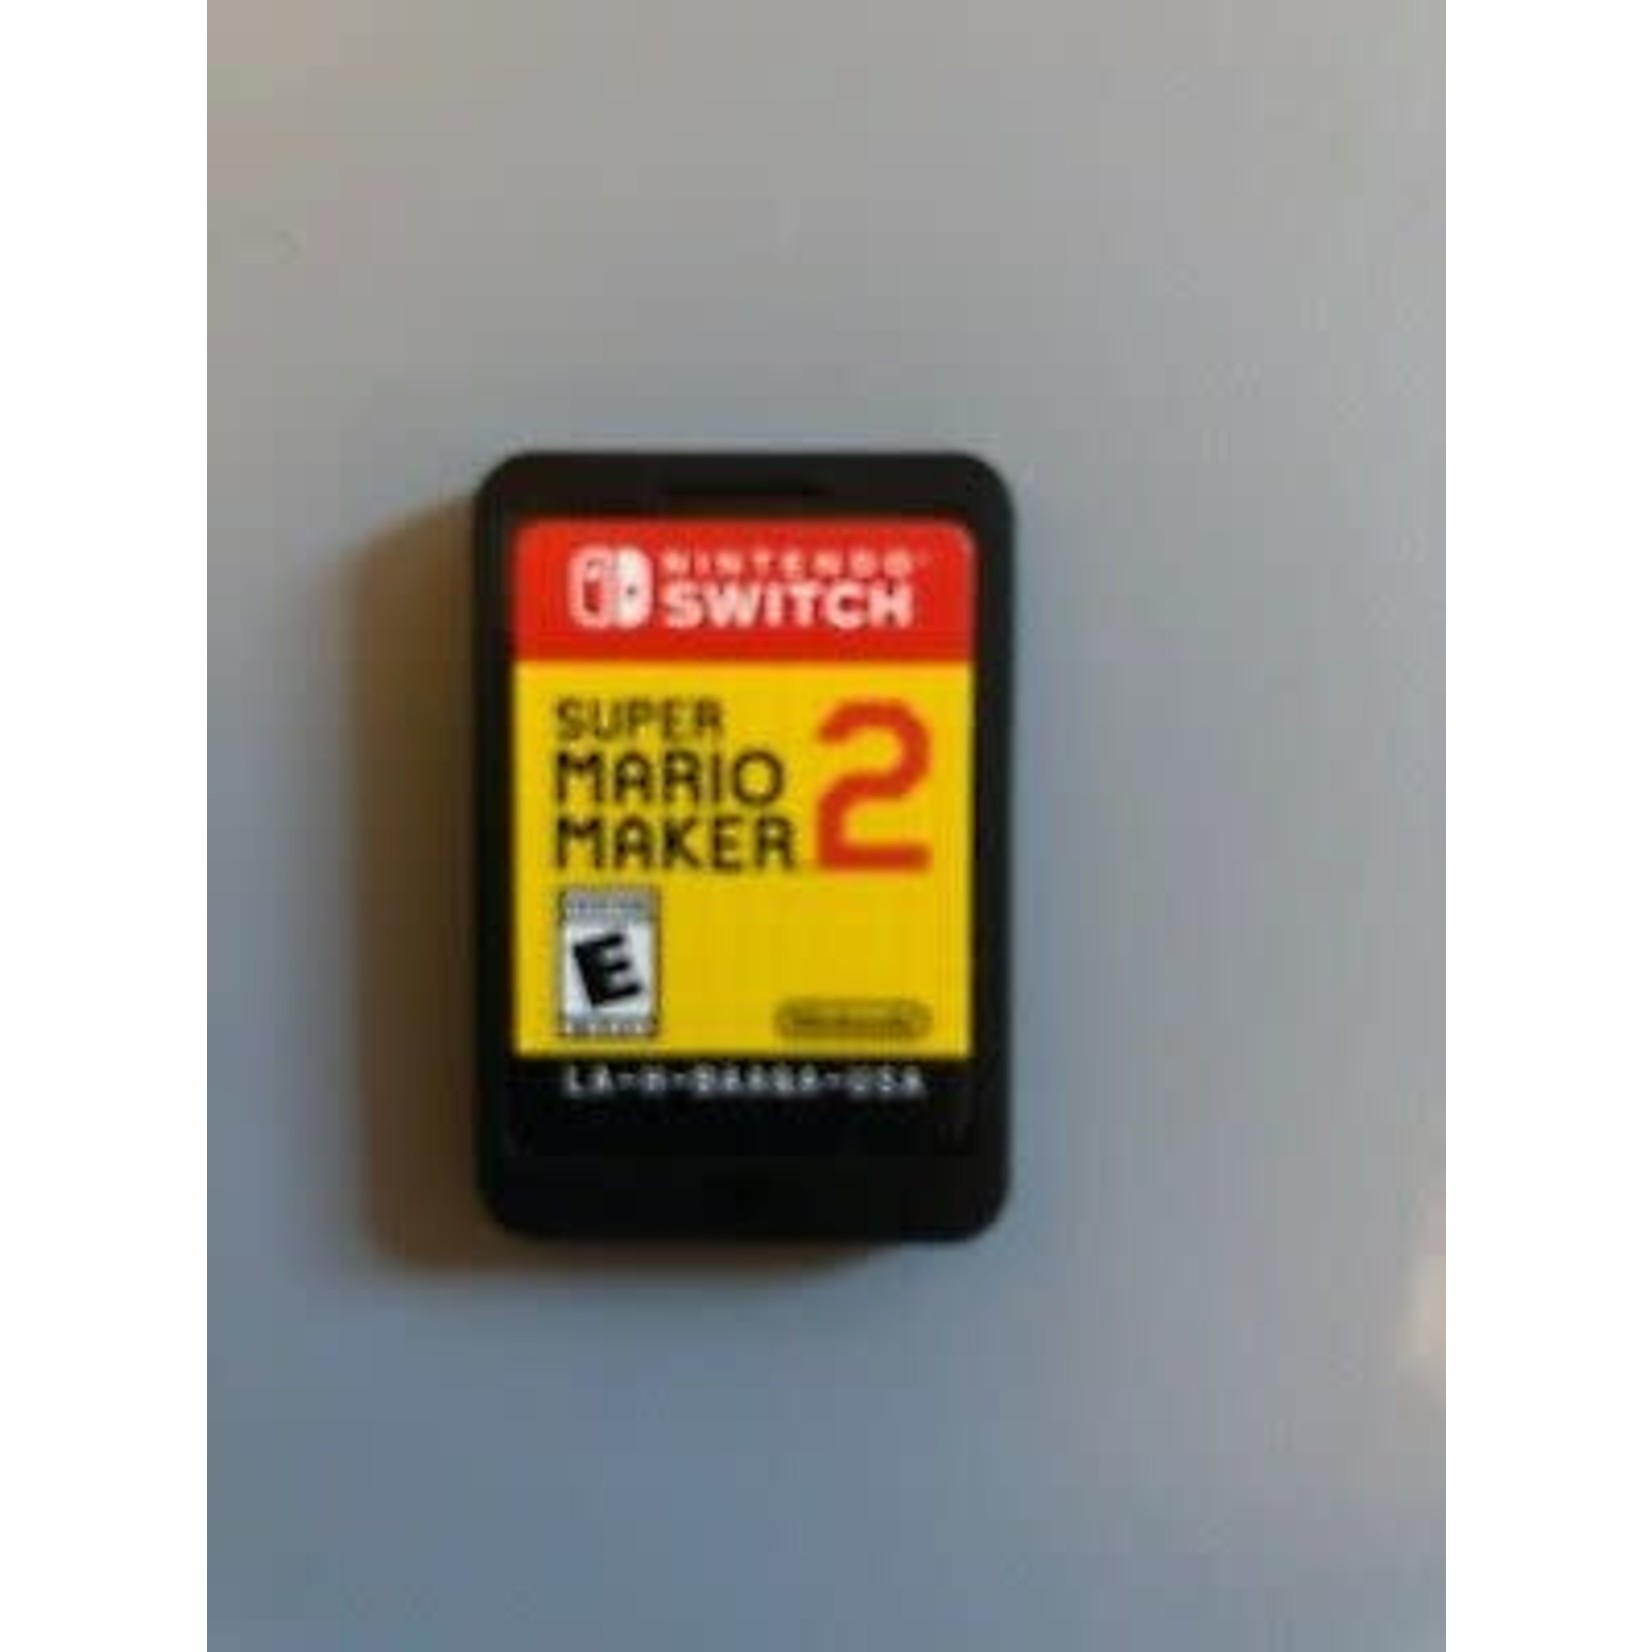 Switchu-Mario Maker 2 (chip only)